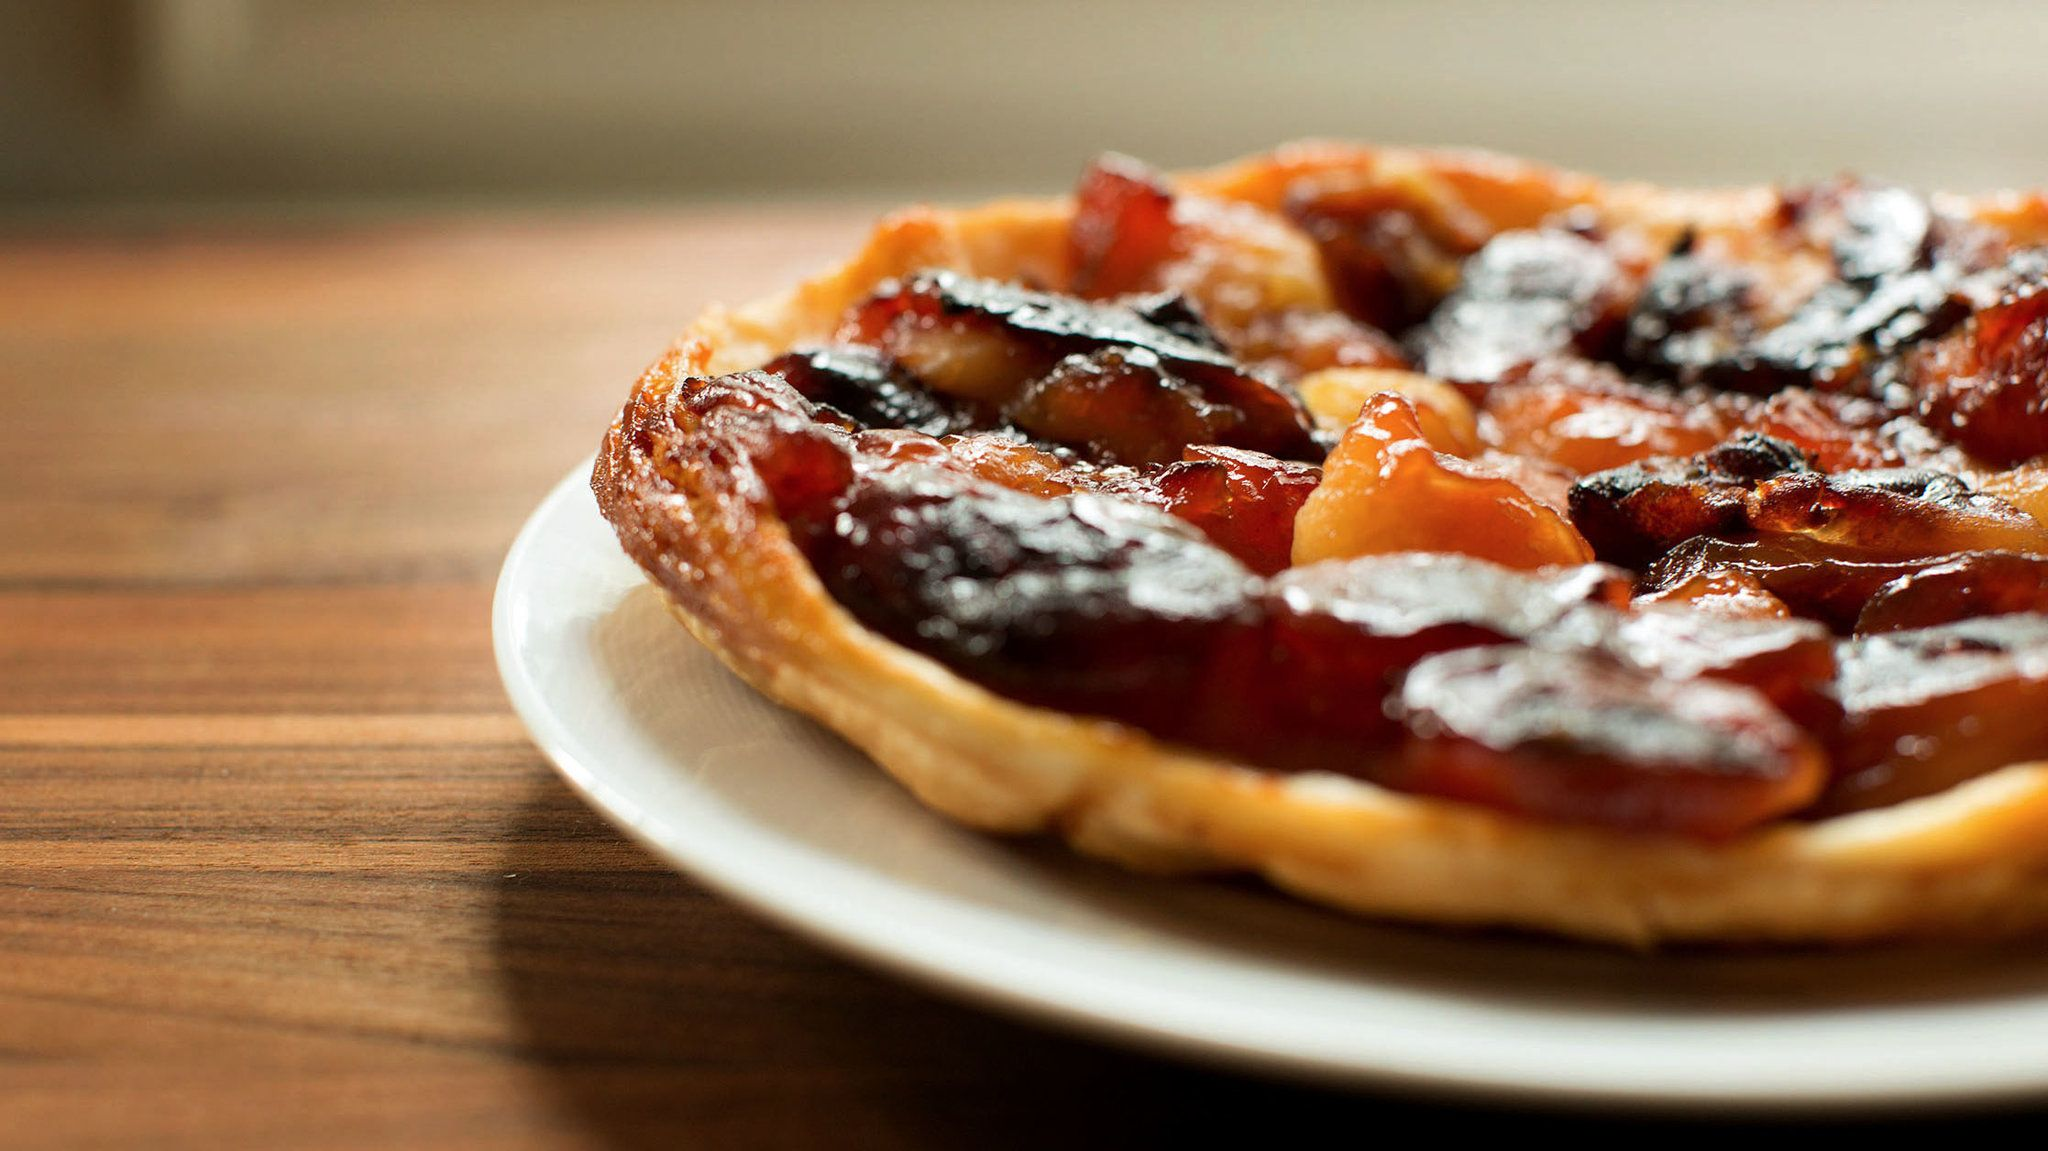 Tarte Tatin isn't as American as apple pie, but it's a